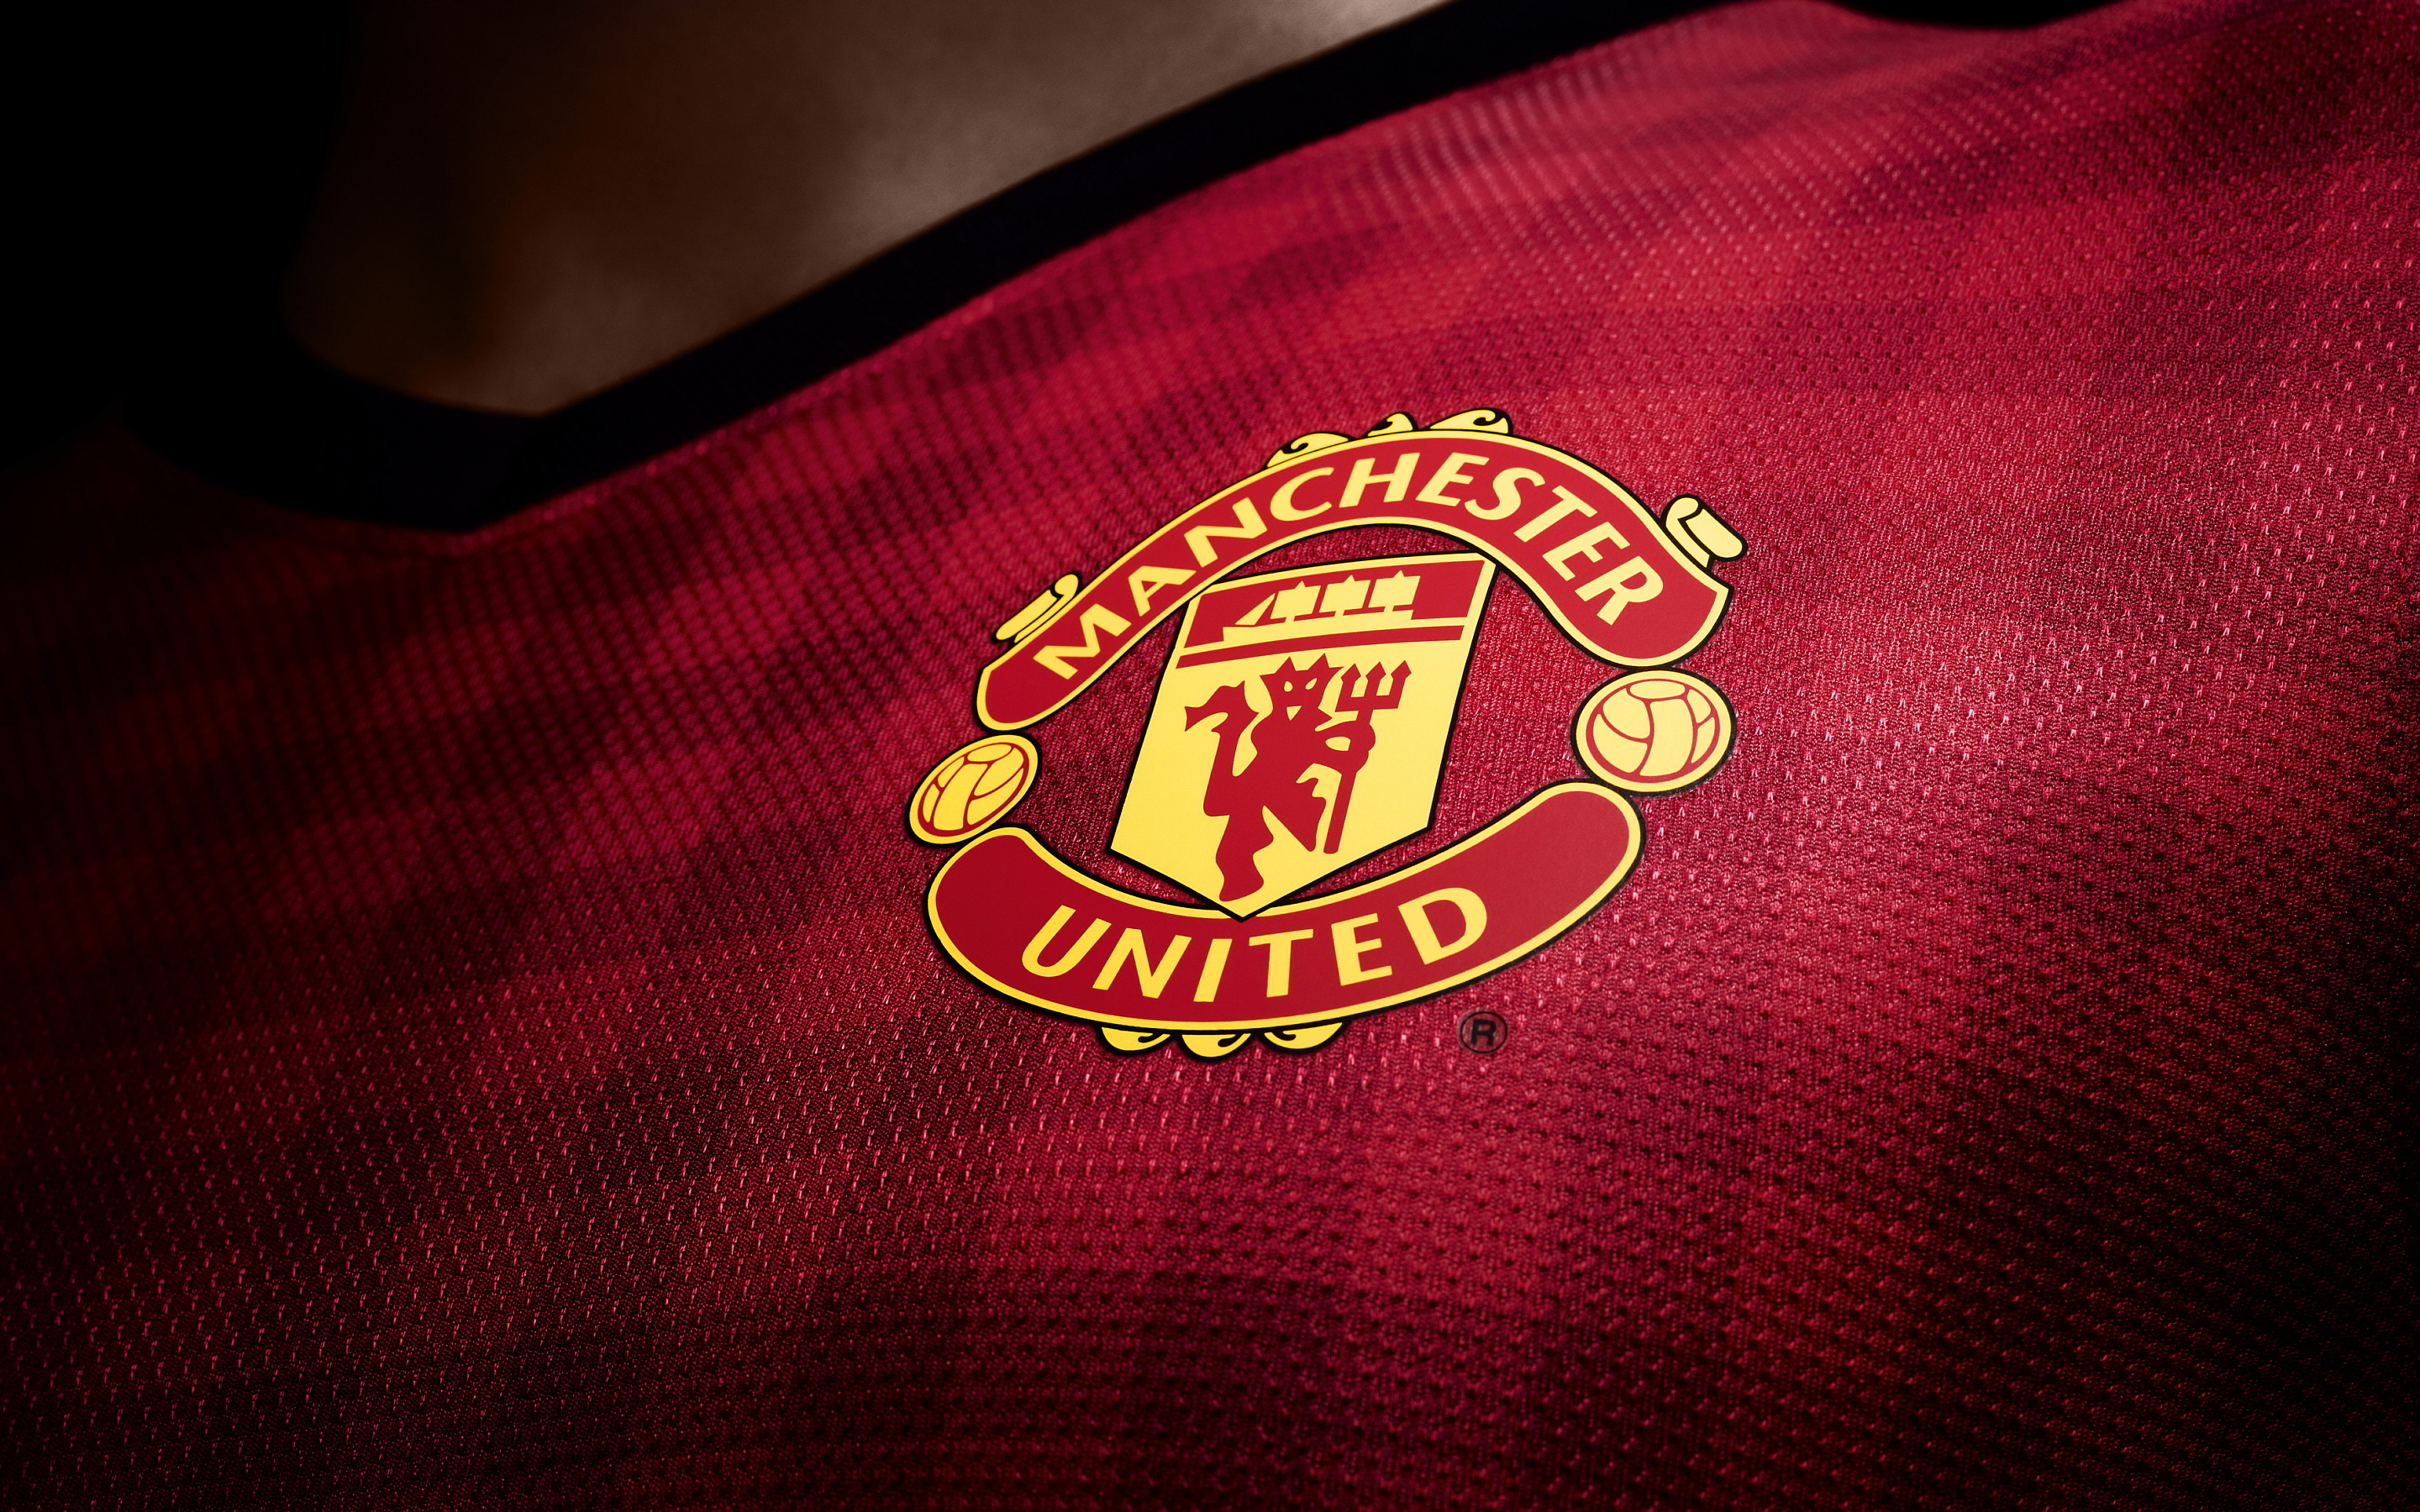 Manchester United, Adidas Suit Up Together in Record Deal | Business of Soccer